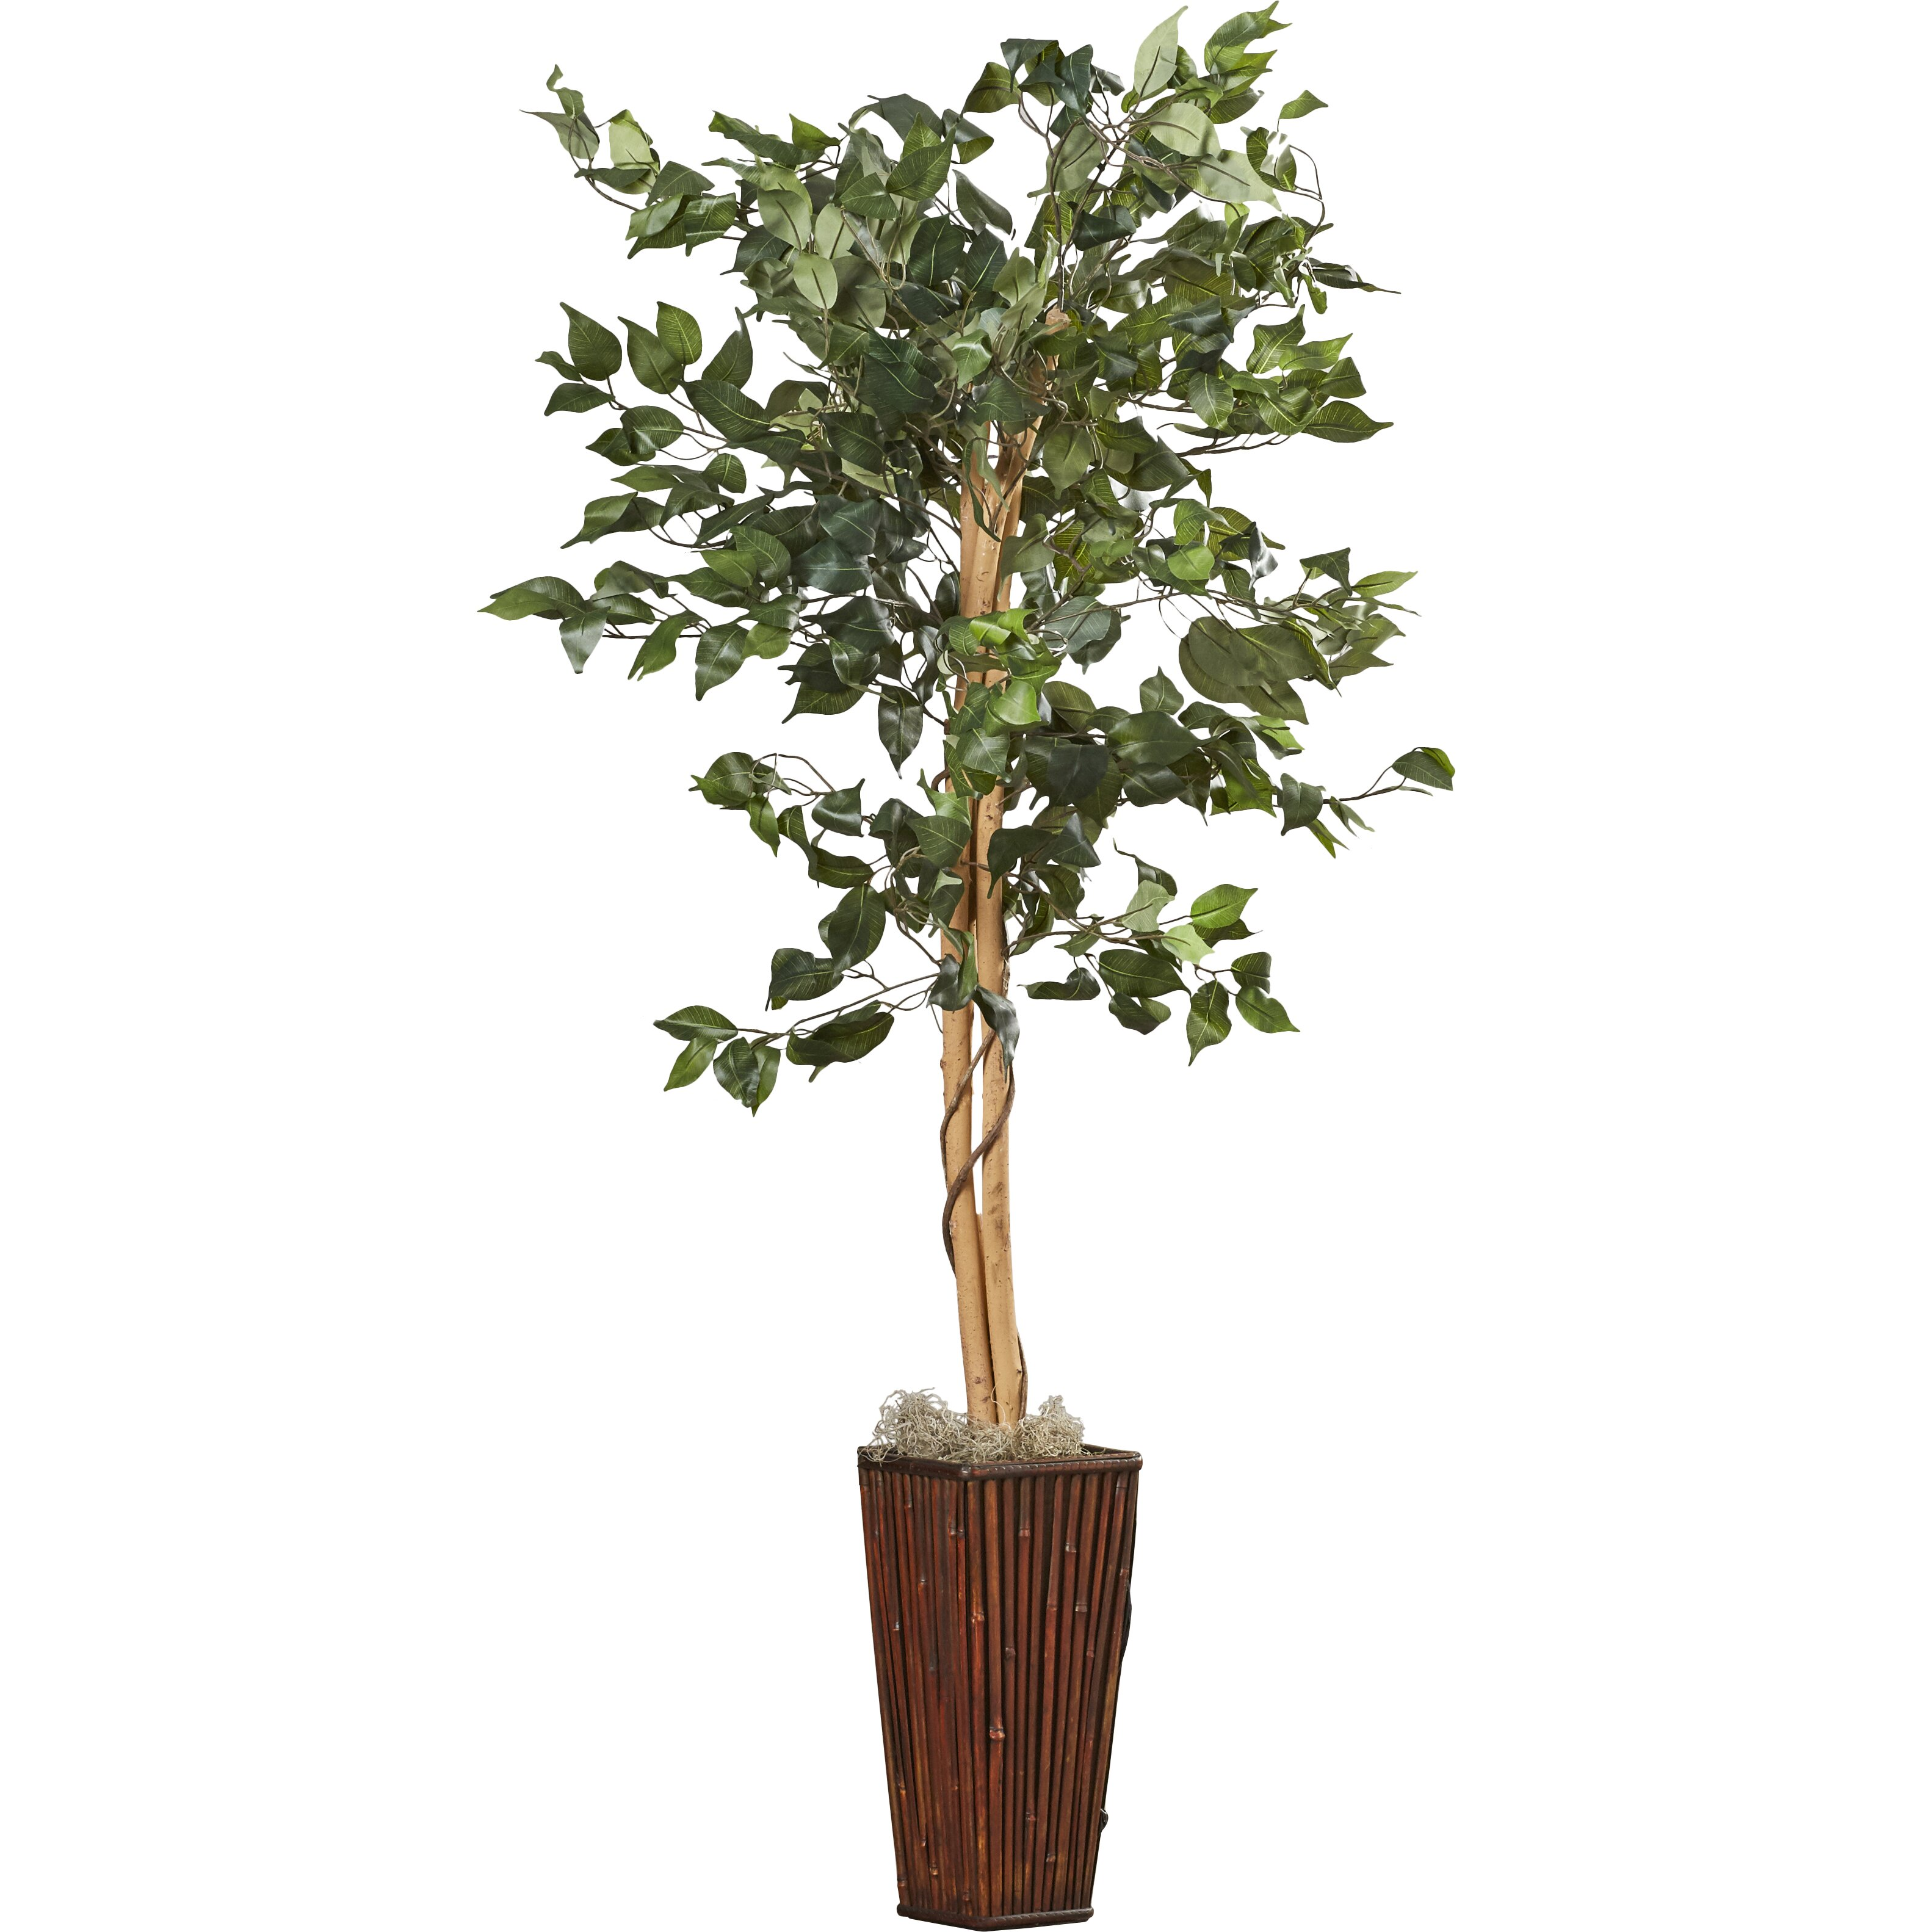 Two Become One Decorative Trees: Charlton Home Ficus Tree In Decorative Vase & Reviews